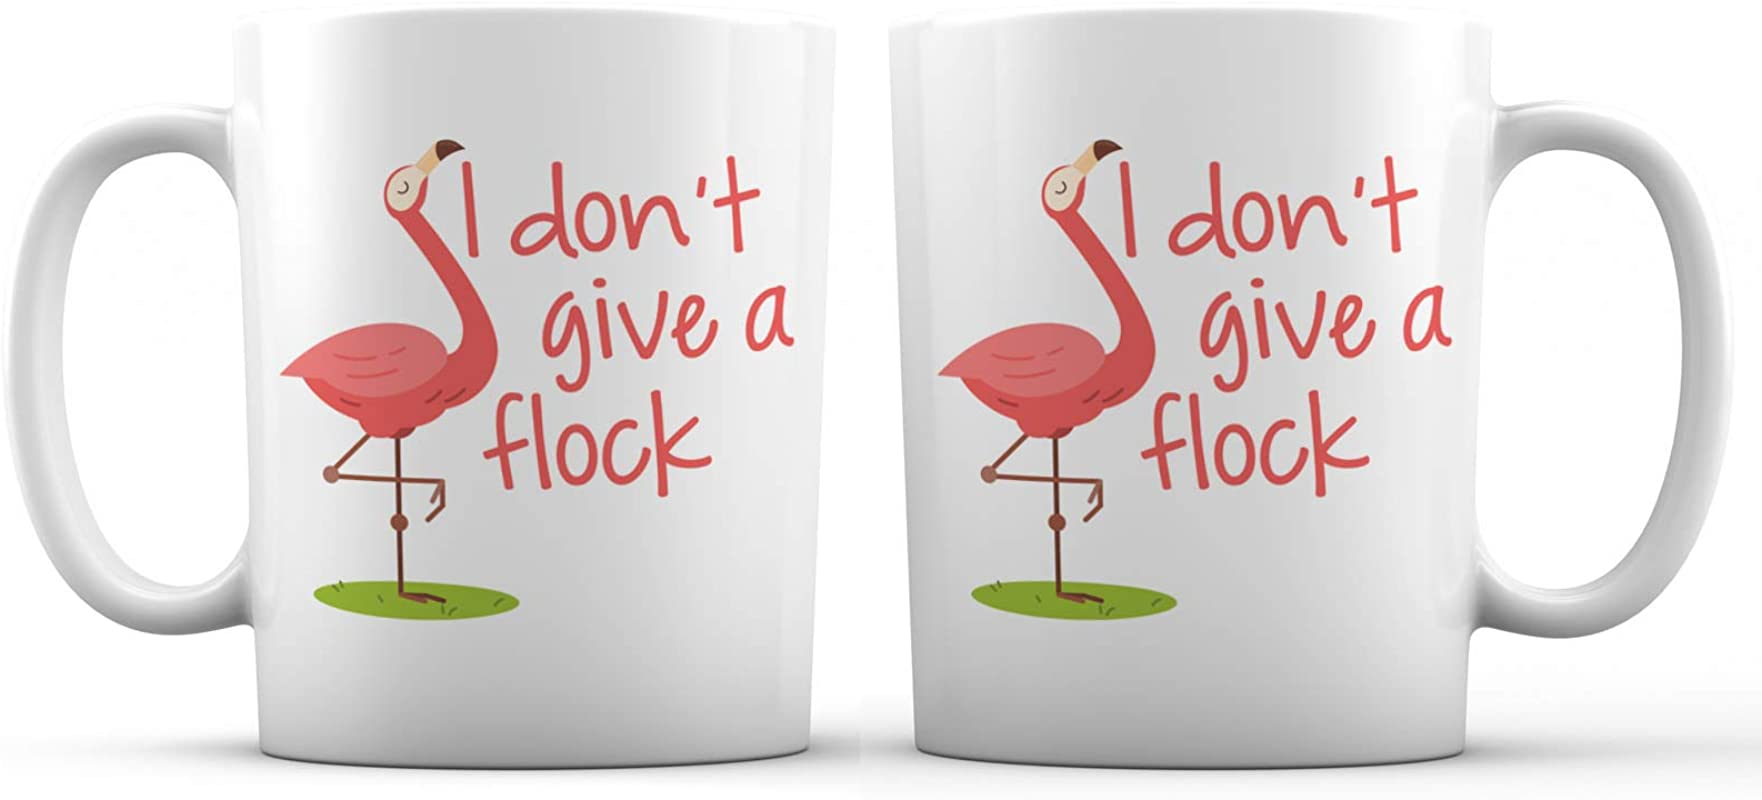 I Don T Give A Flock Reckless Flamingo Funny Ceramic Coffee Mug 11 Oz Awesome New Design Decorative Sarcastic Gift Cup Accessory For Women Men Girls Mom Wife Girlfriend Boyfriend